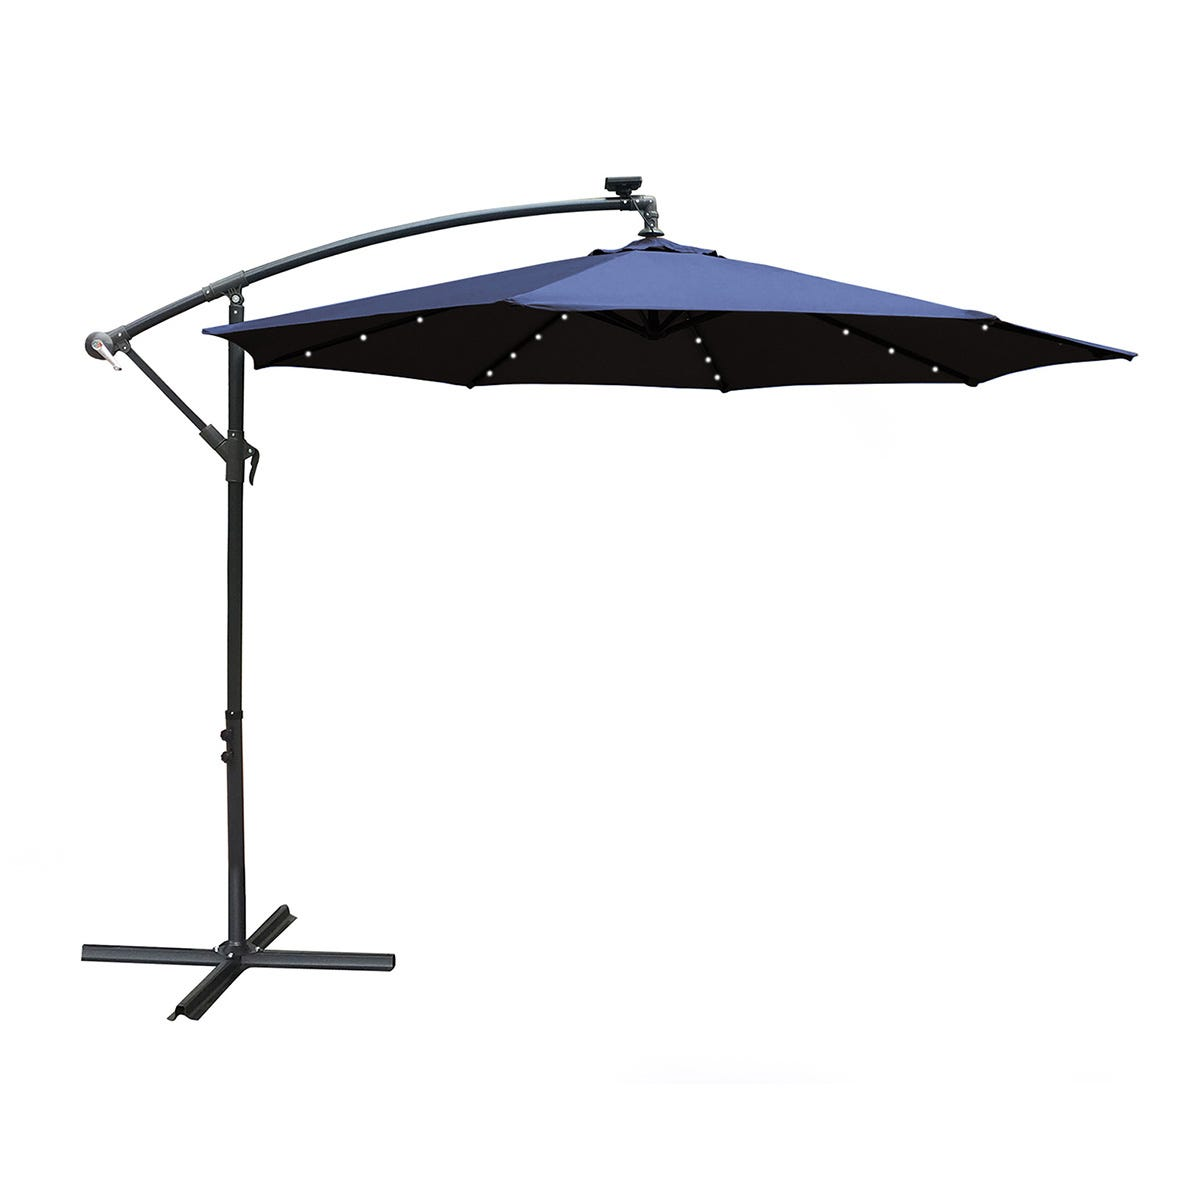 Airwave 3m Banana Hanging Parasol with Solar LED Spotlights (base not included) - Navy